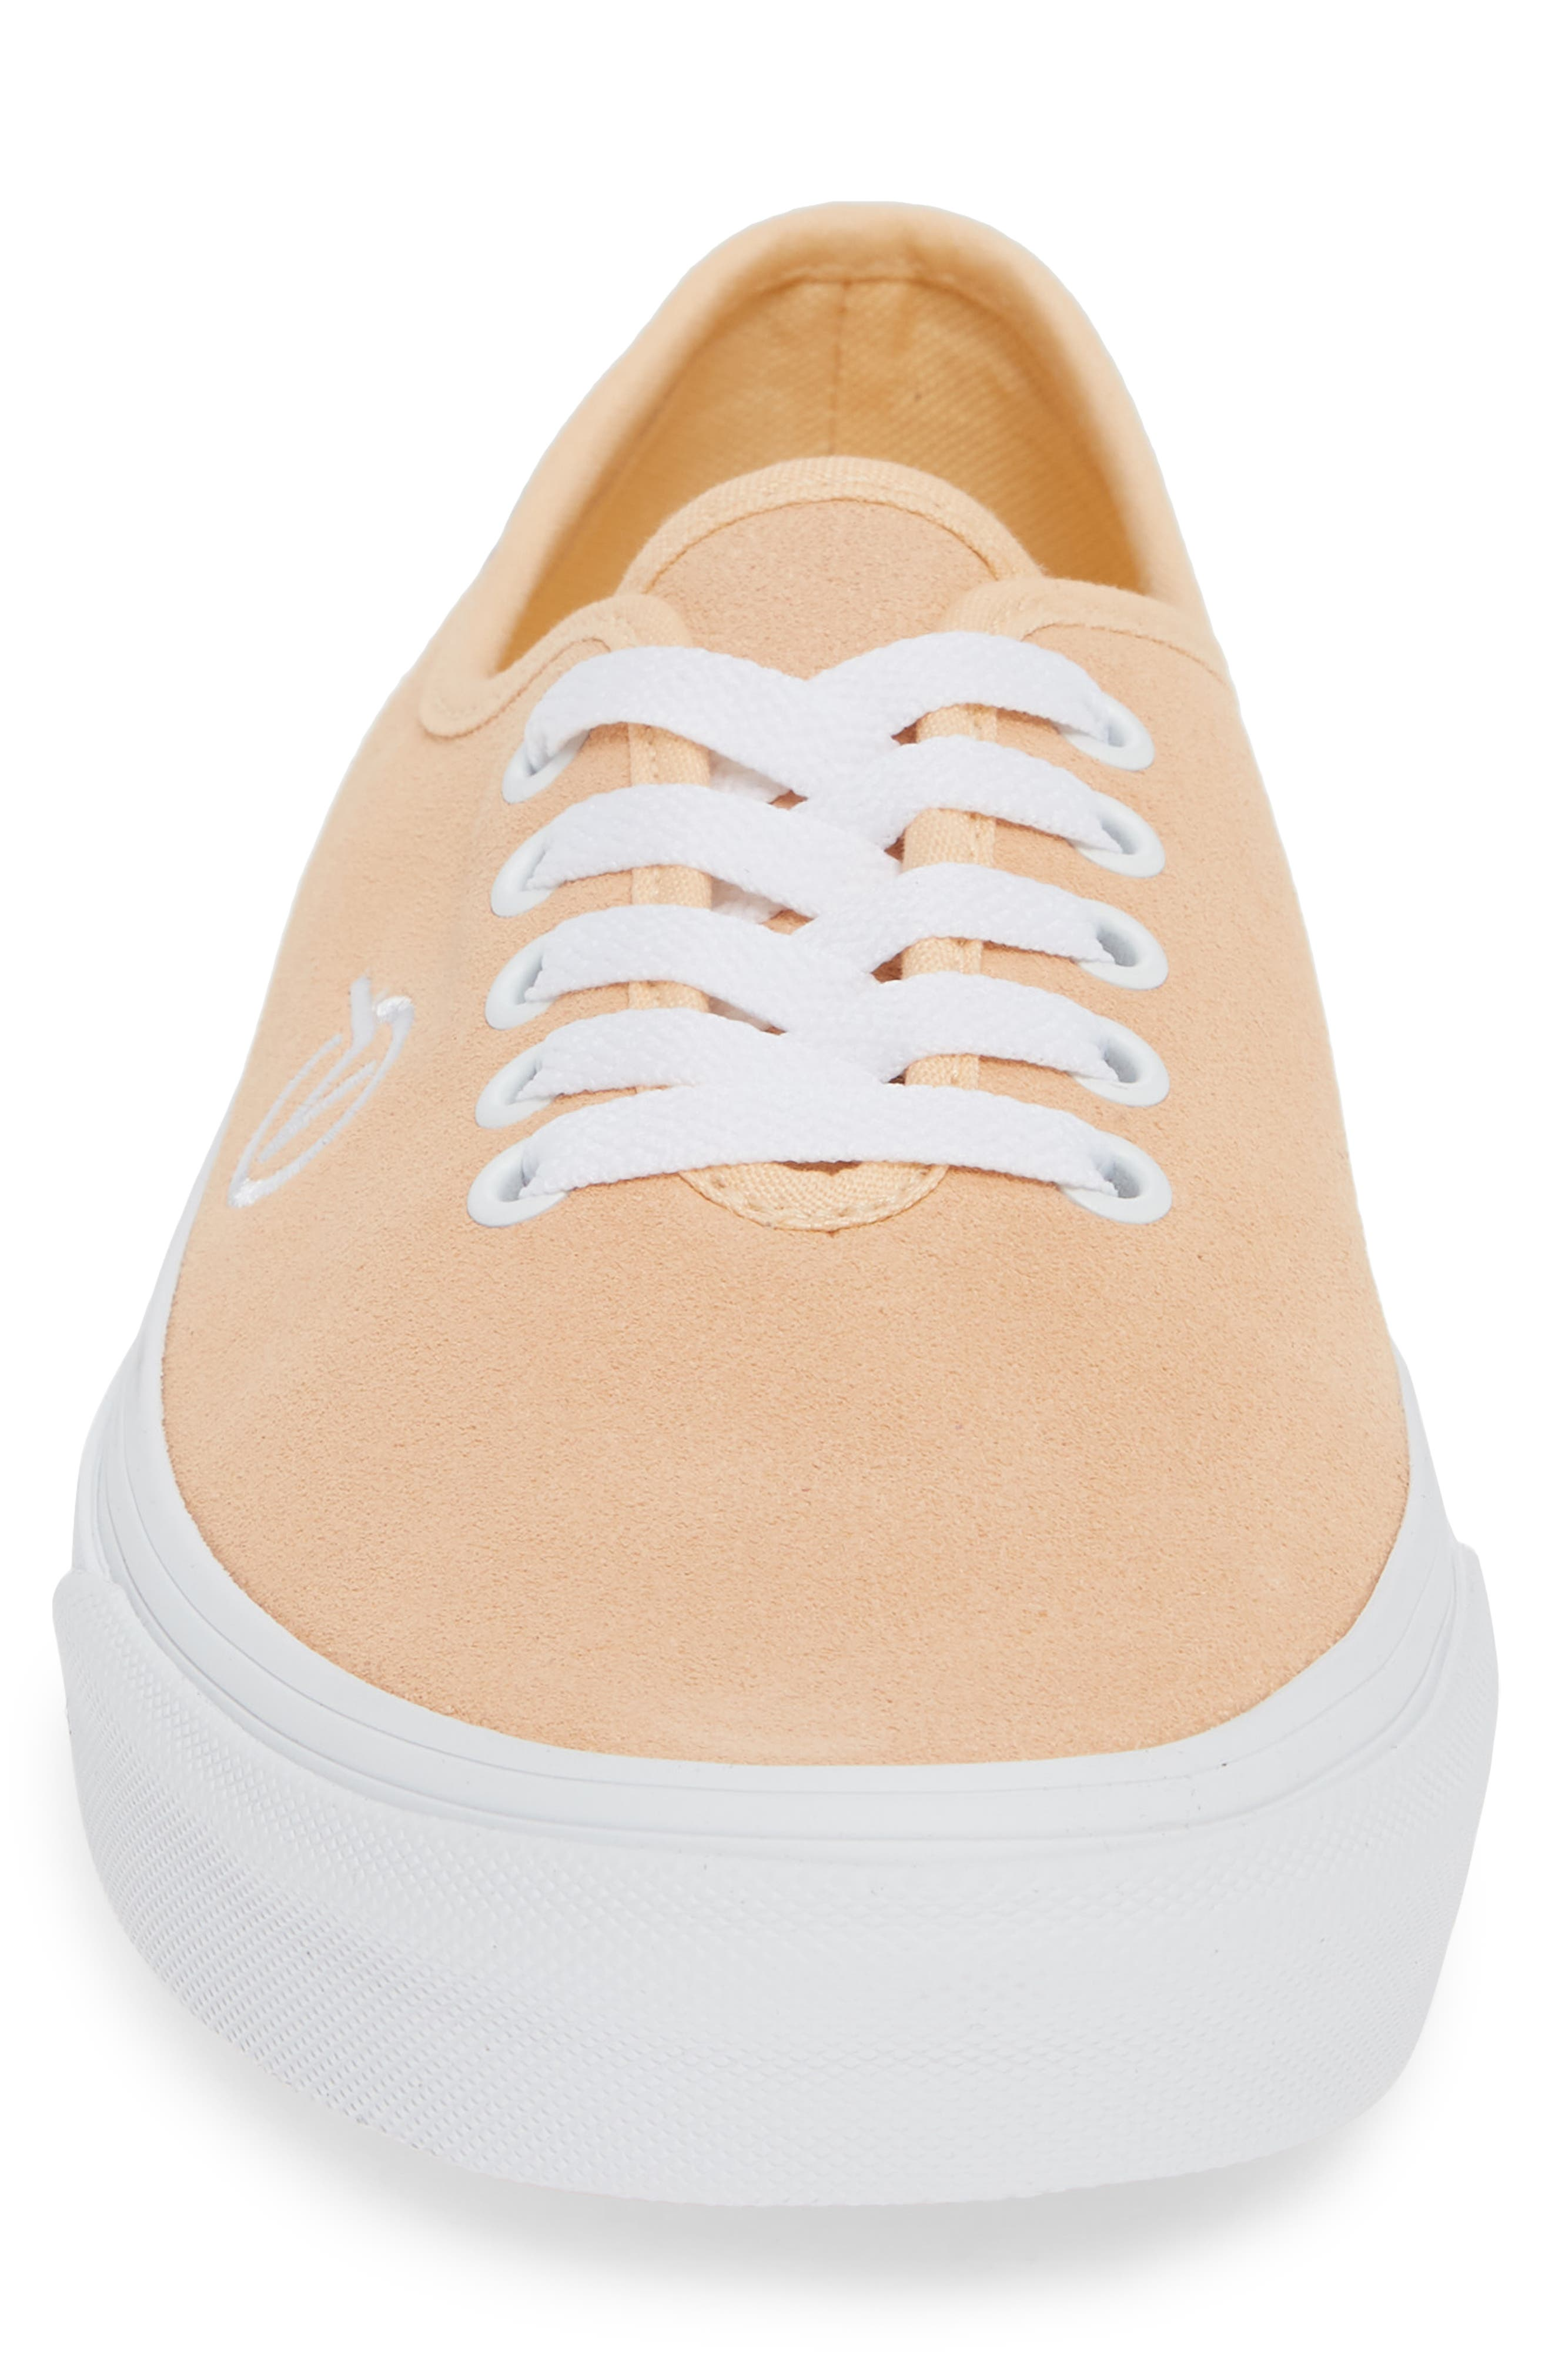 Authentic One-Piece Sneaker,                             Alternate thumbnail 4, color,                             BLEACHED APRICOT/ SUEDE